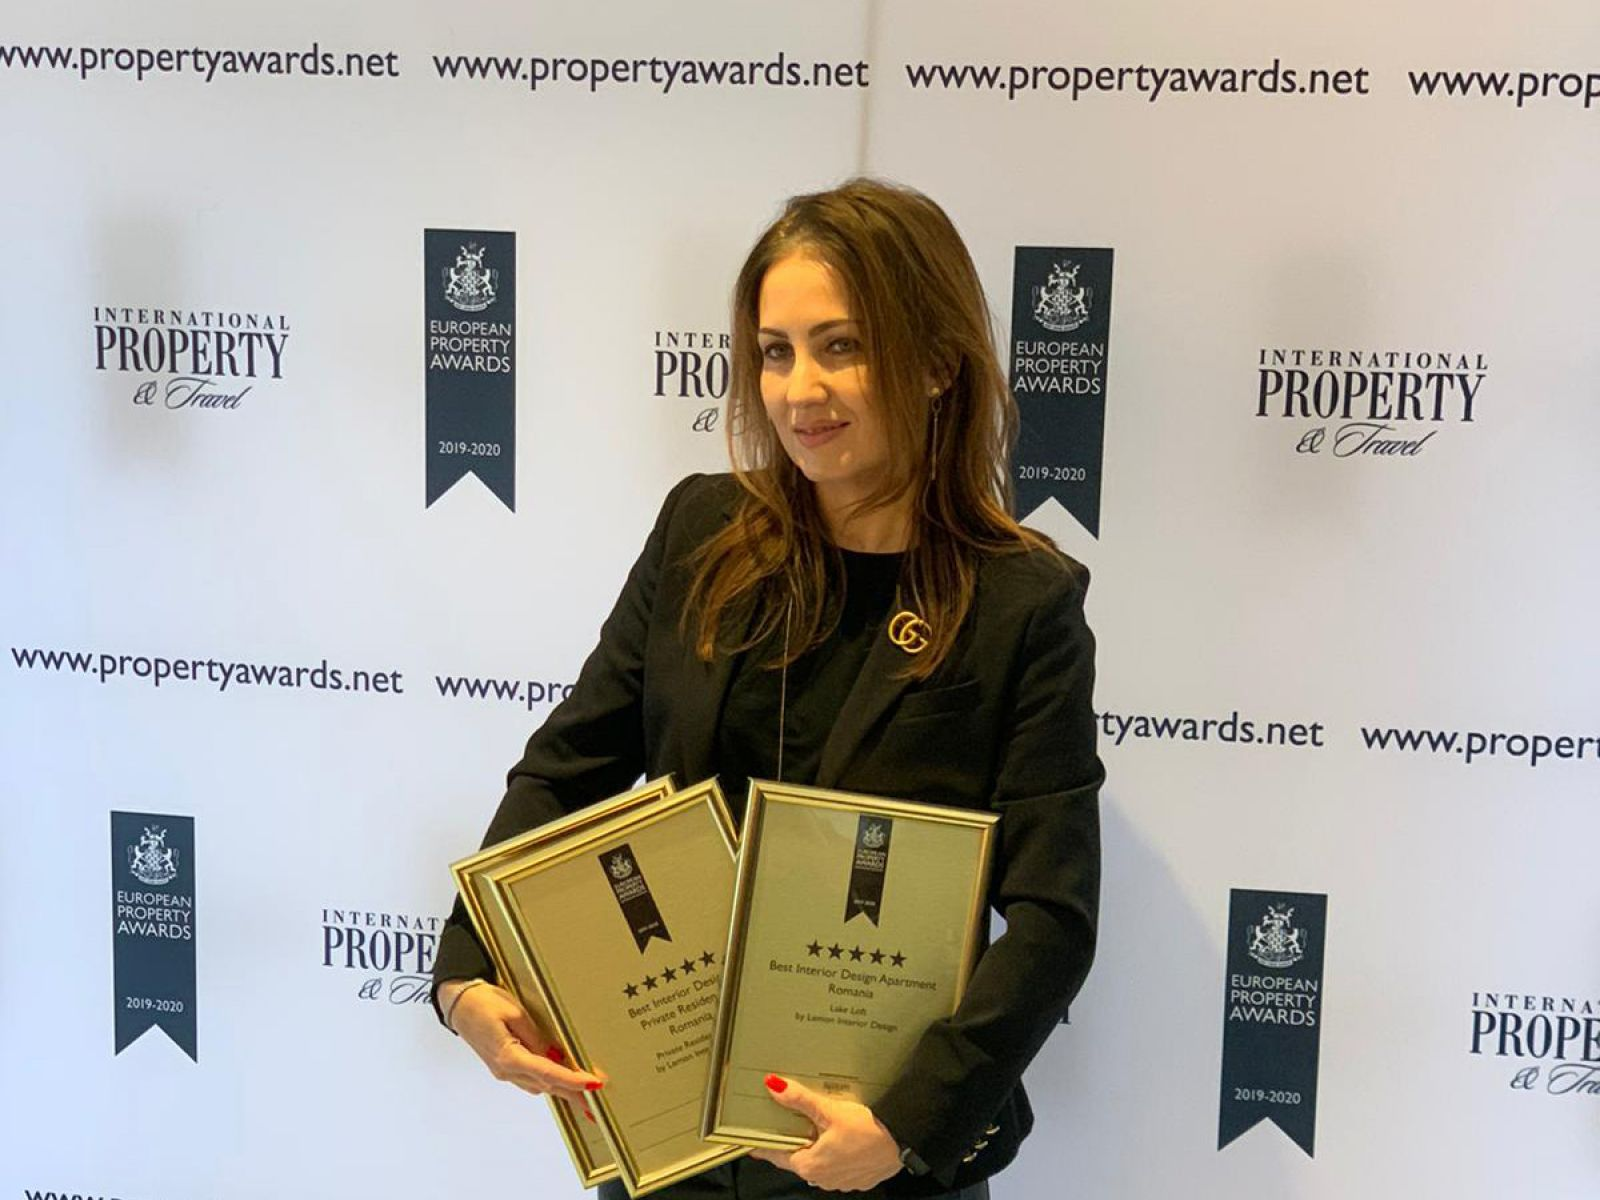 Lemon Interior Design has won 3 awards at the International Property Awards, 2 of them with a 5-star level